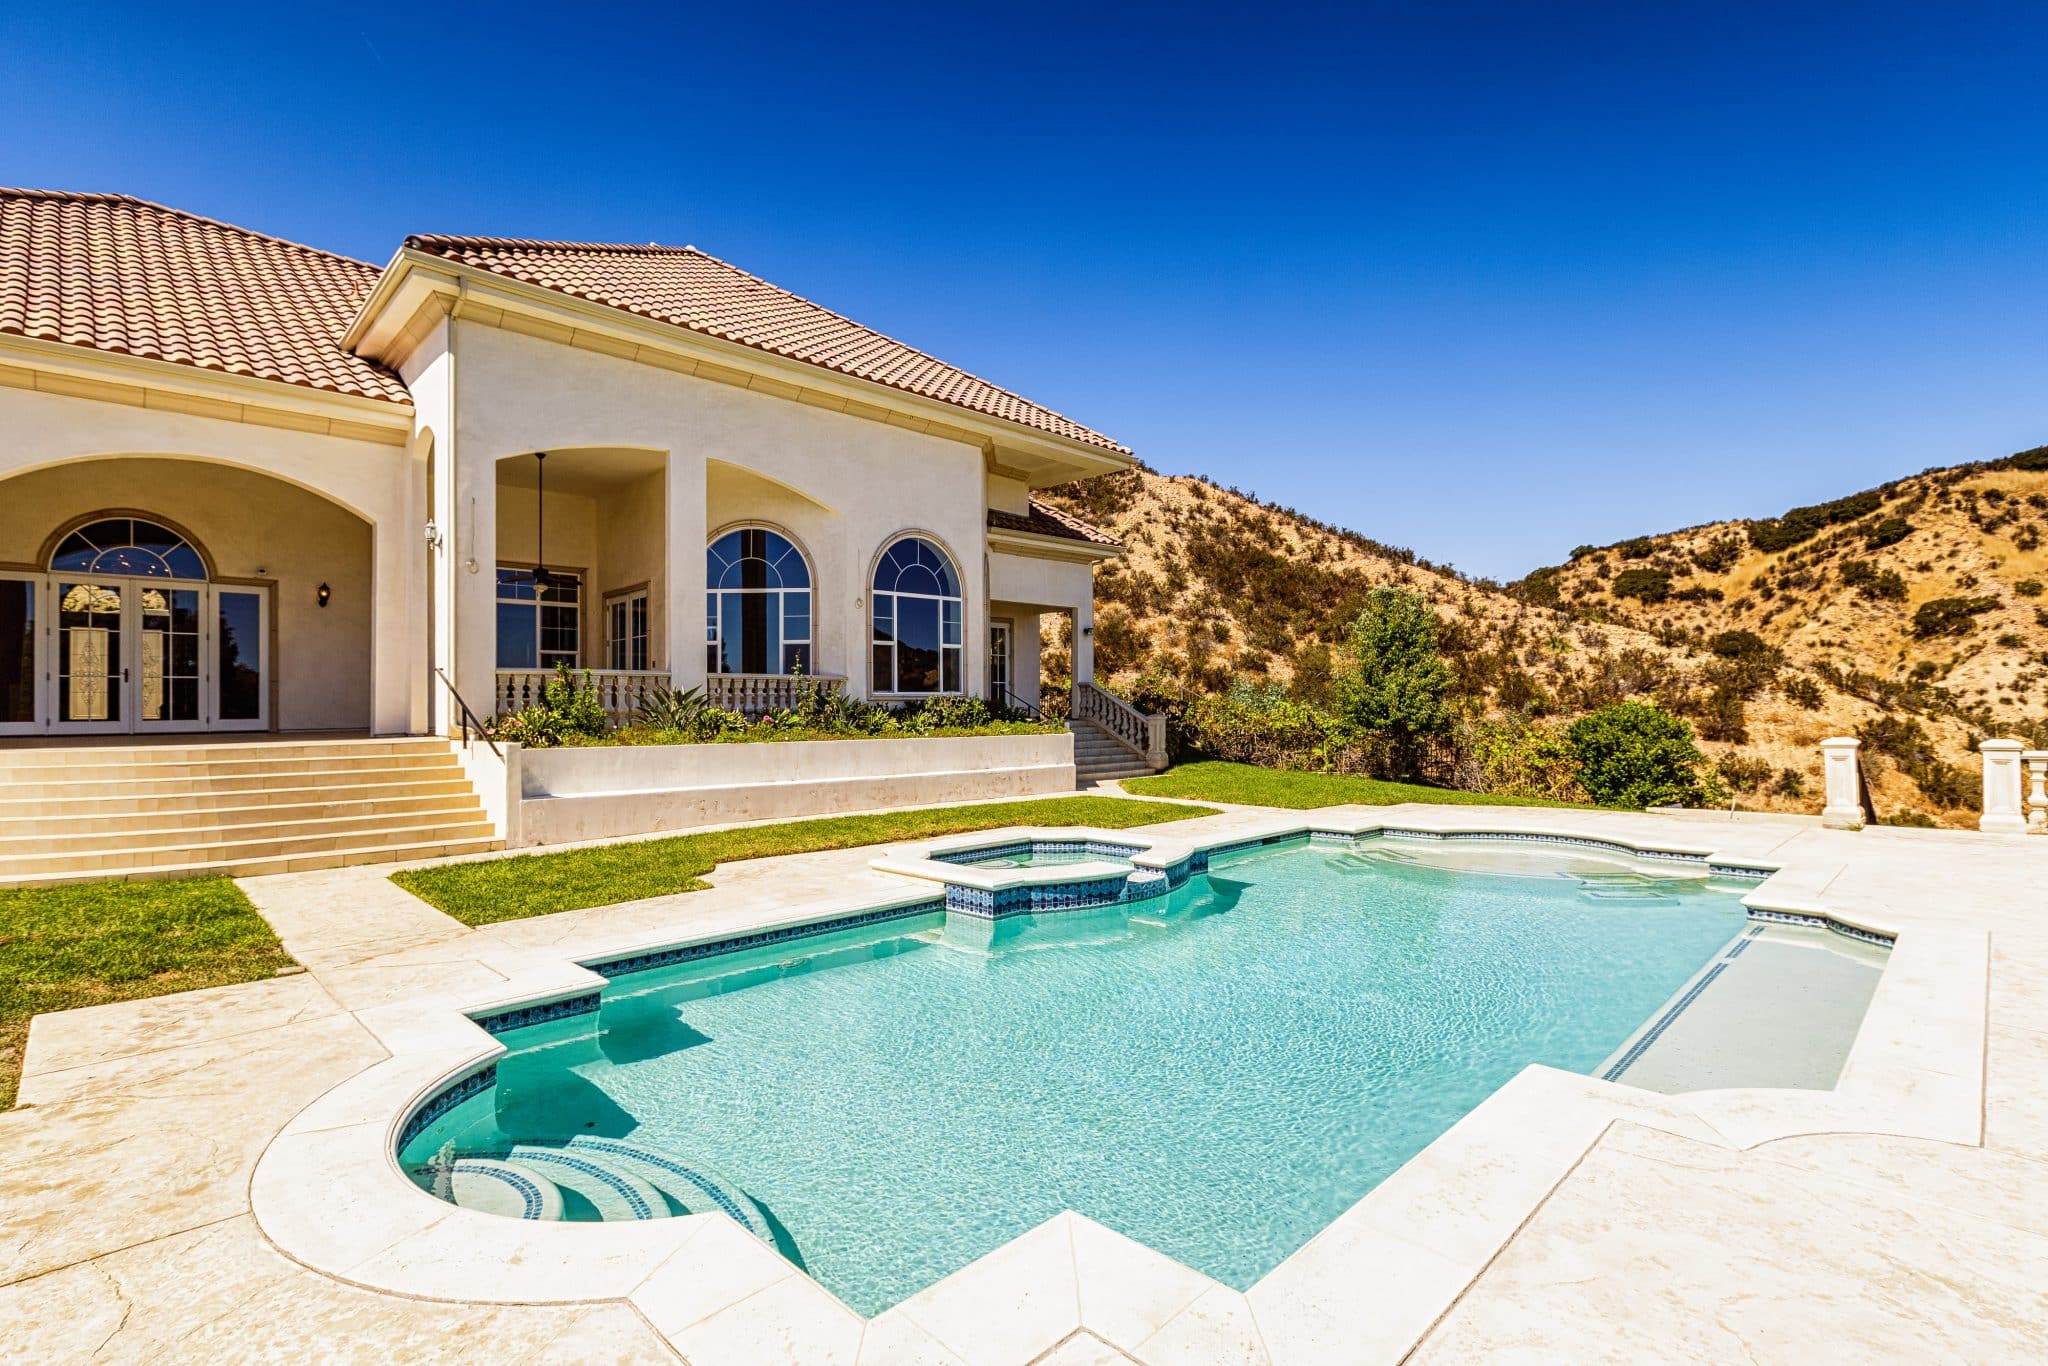 Bell Canyon Real Estate: Bell Canyon Homes for sale